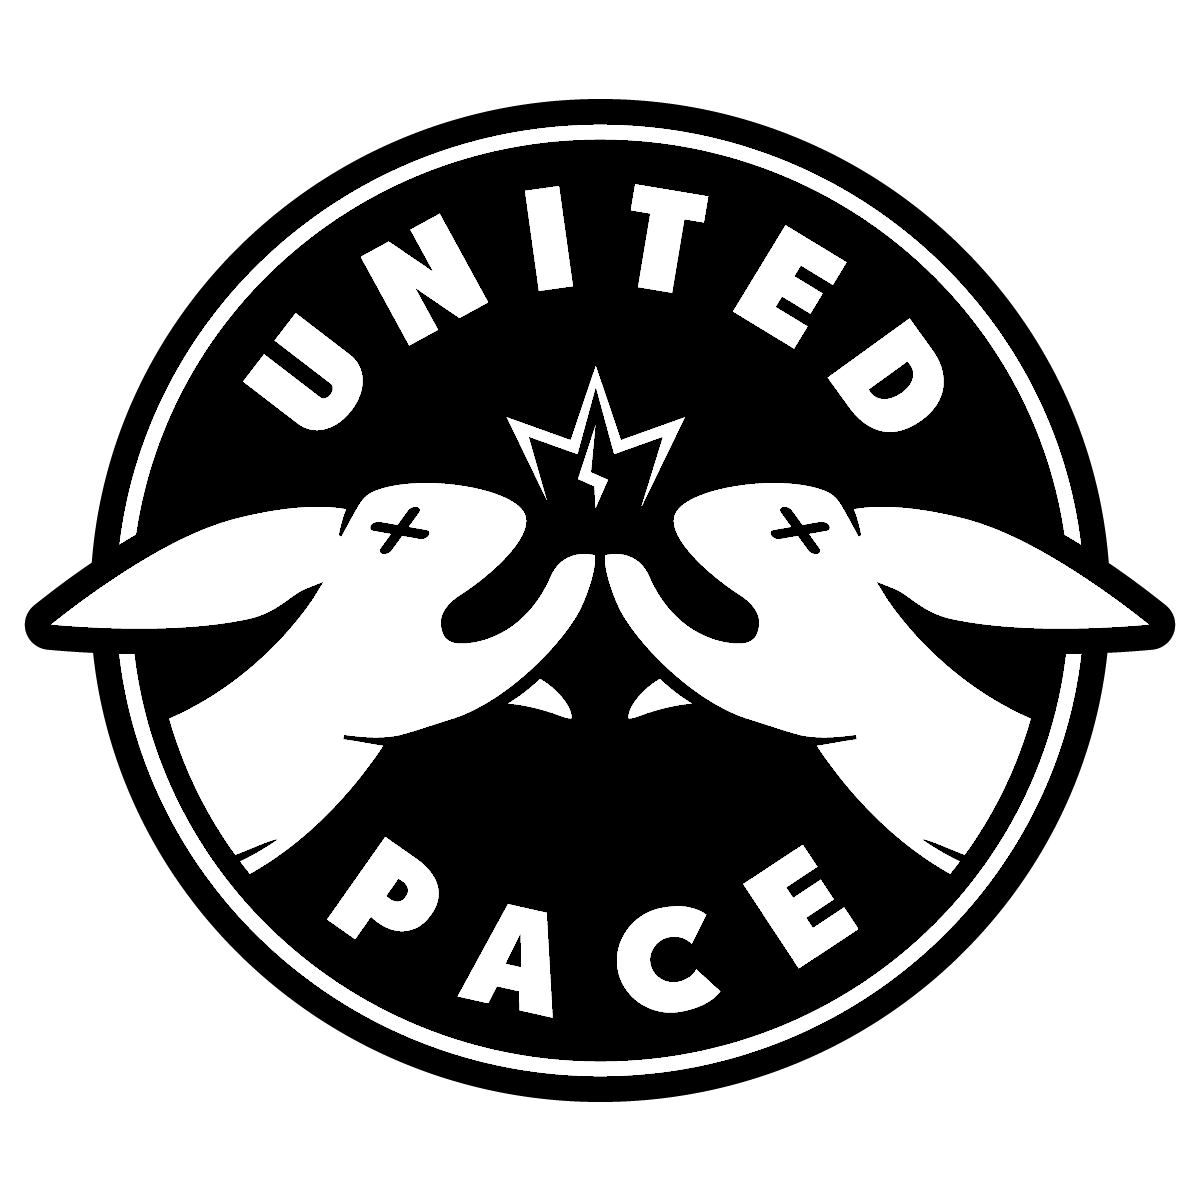 United pace